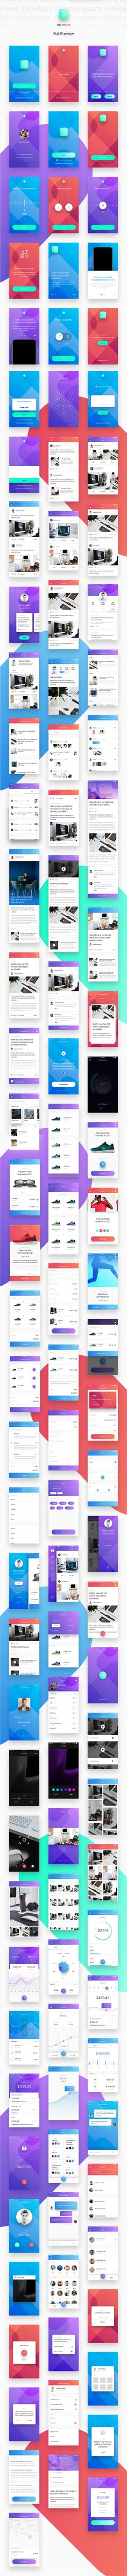 Flok iOS UI Kit - Must have UI Kit with 110+ iOS screens in 19 categories